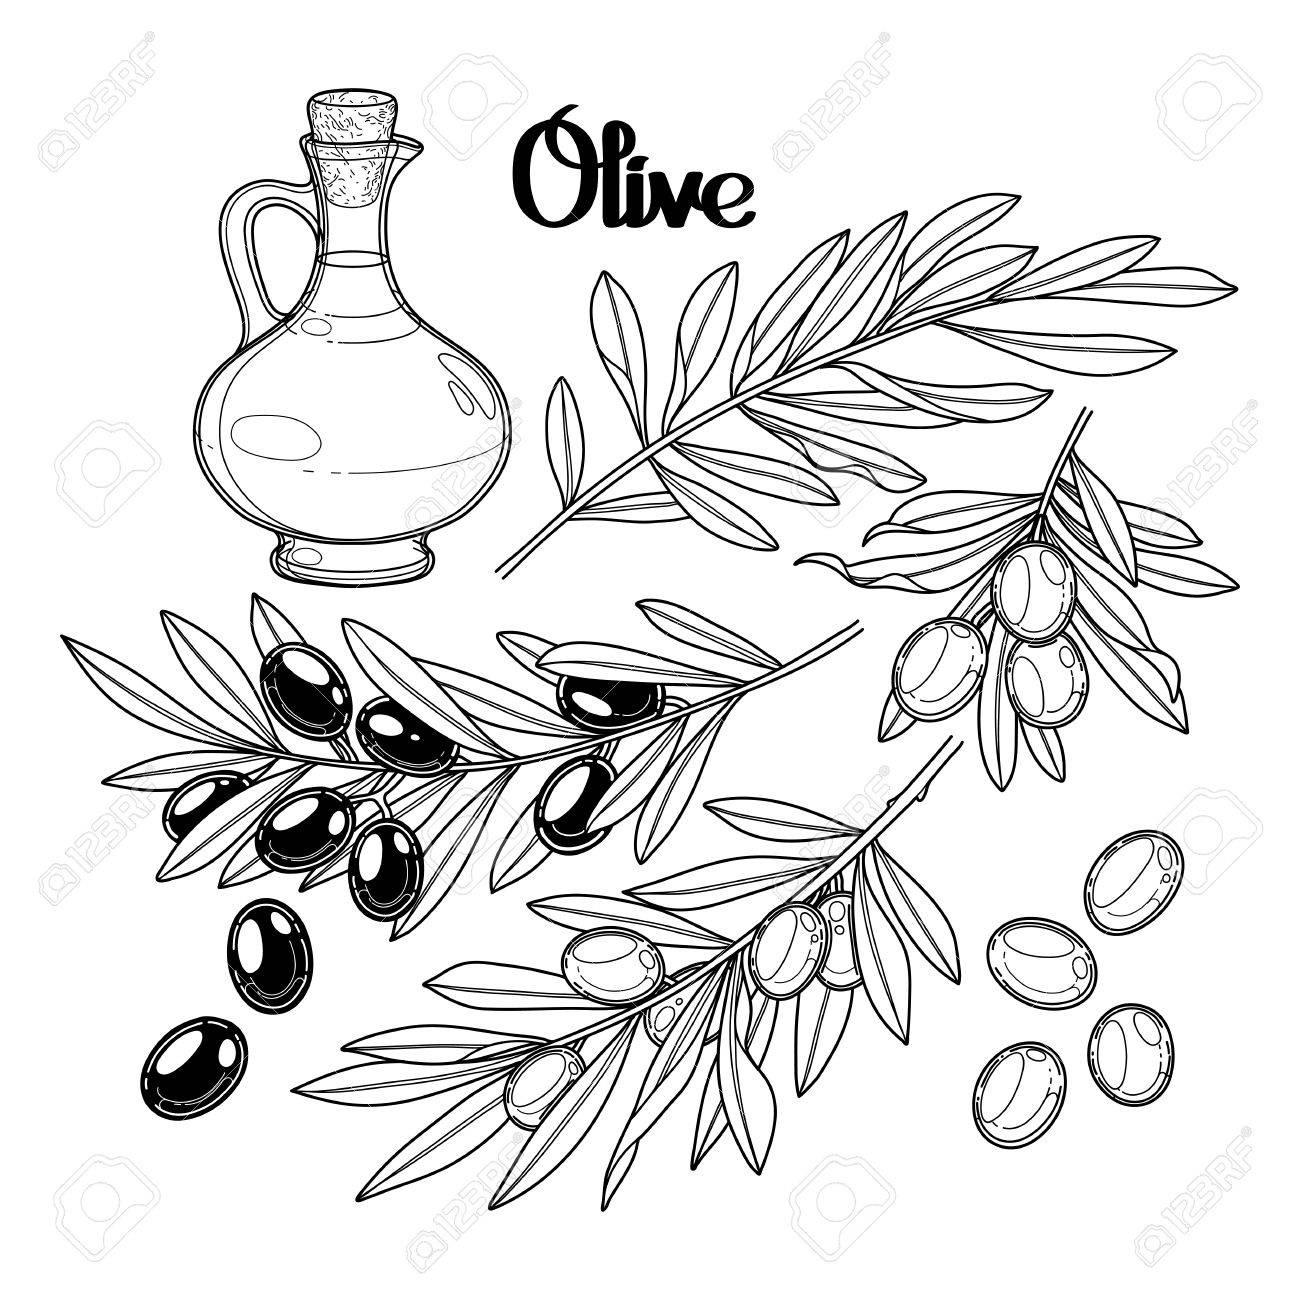 Coloriage Arbre Dolive.Collection D Olive Graphique Isole Sur Fond Blanc Olives Sur Les